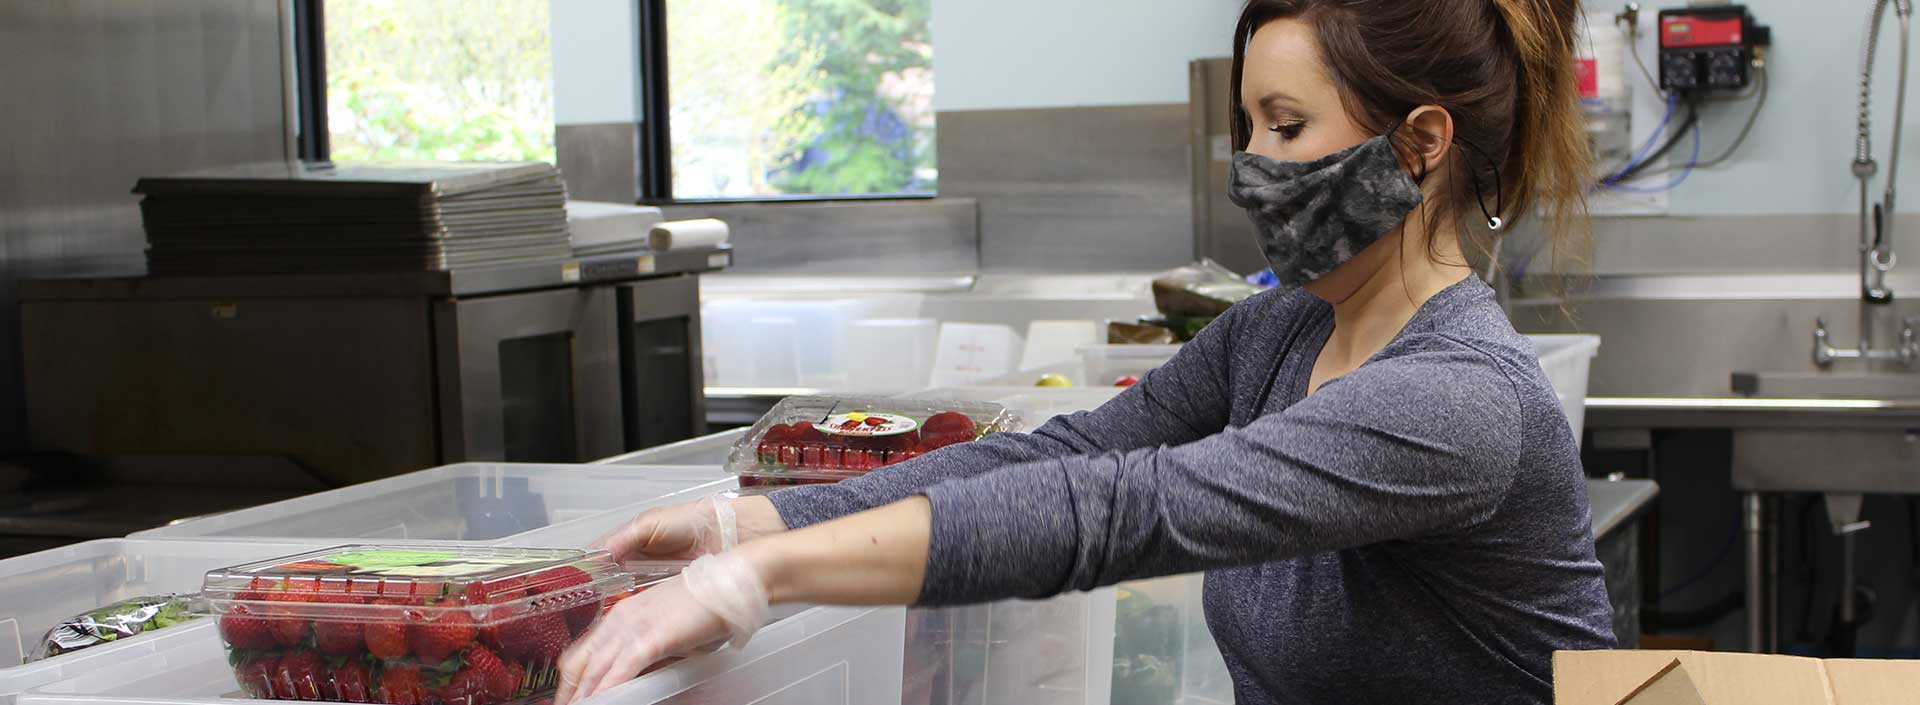 An employee prepares a food delivery in the Senior Center kitchen